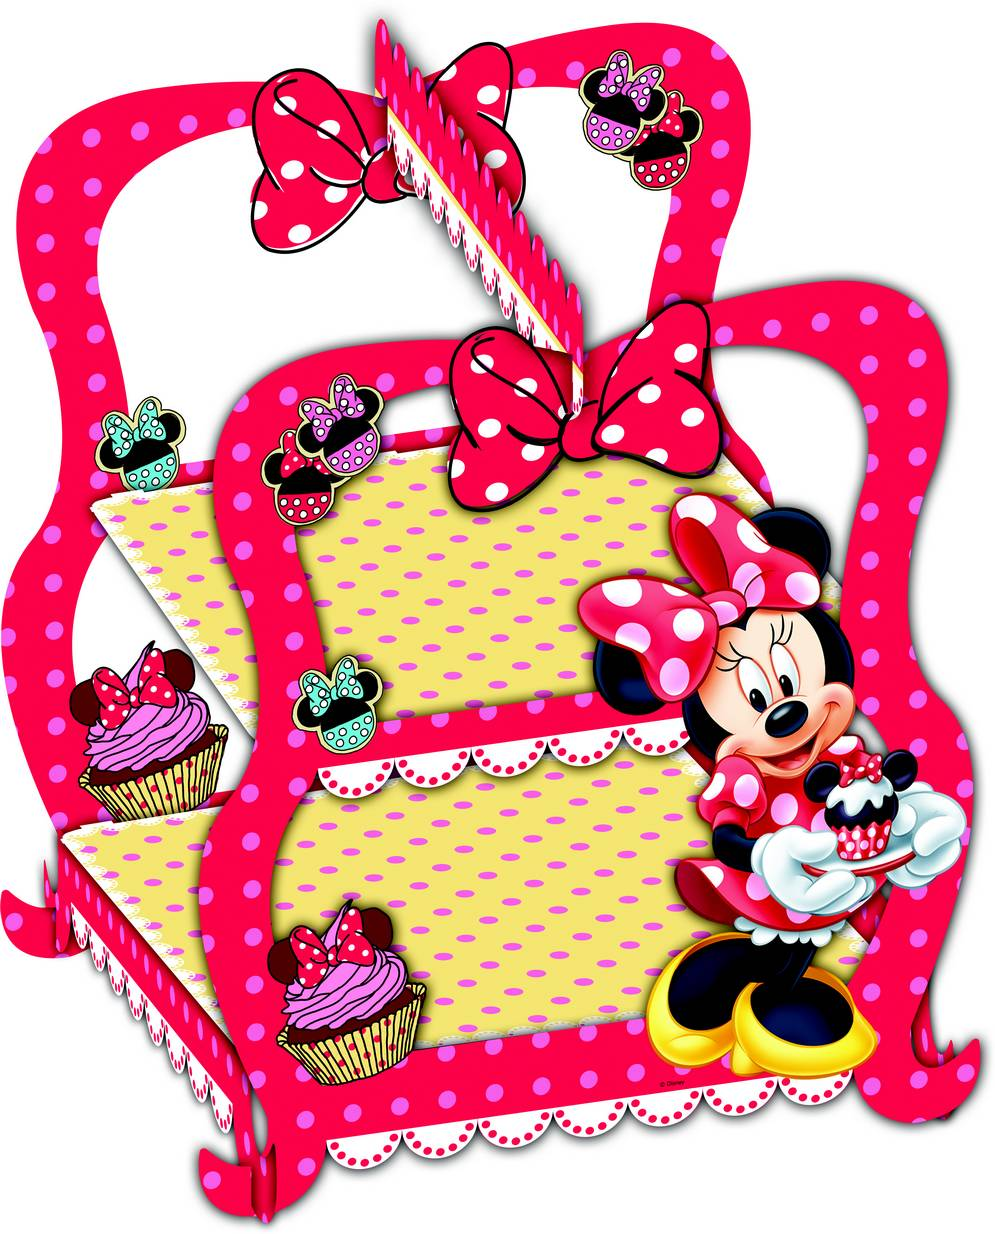 S e kuchen dekoration minnie partydeko und g nstige for Kuche dekoration shop